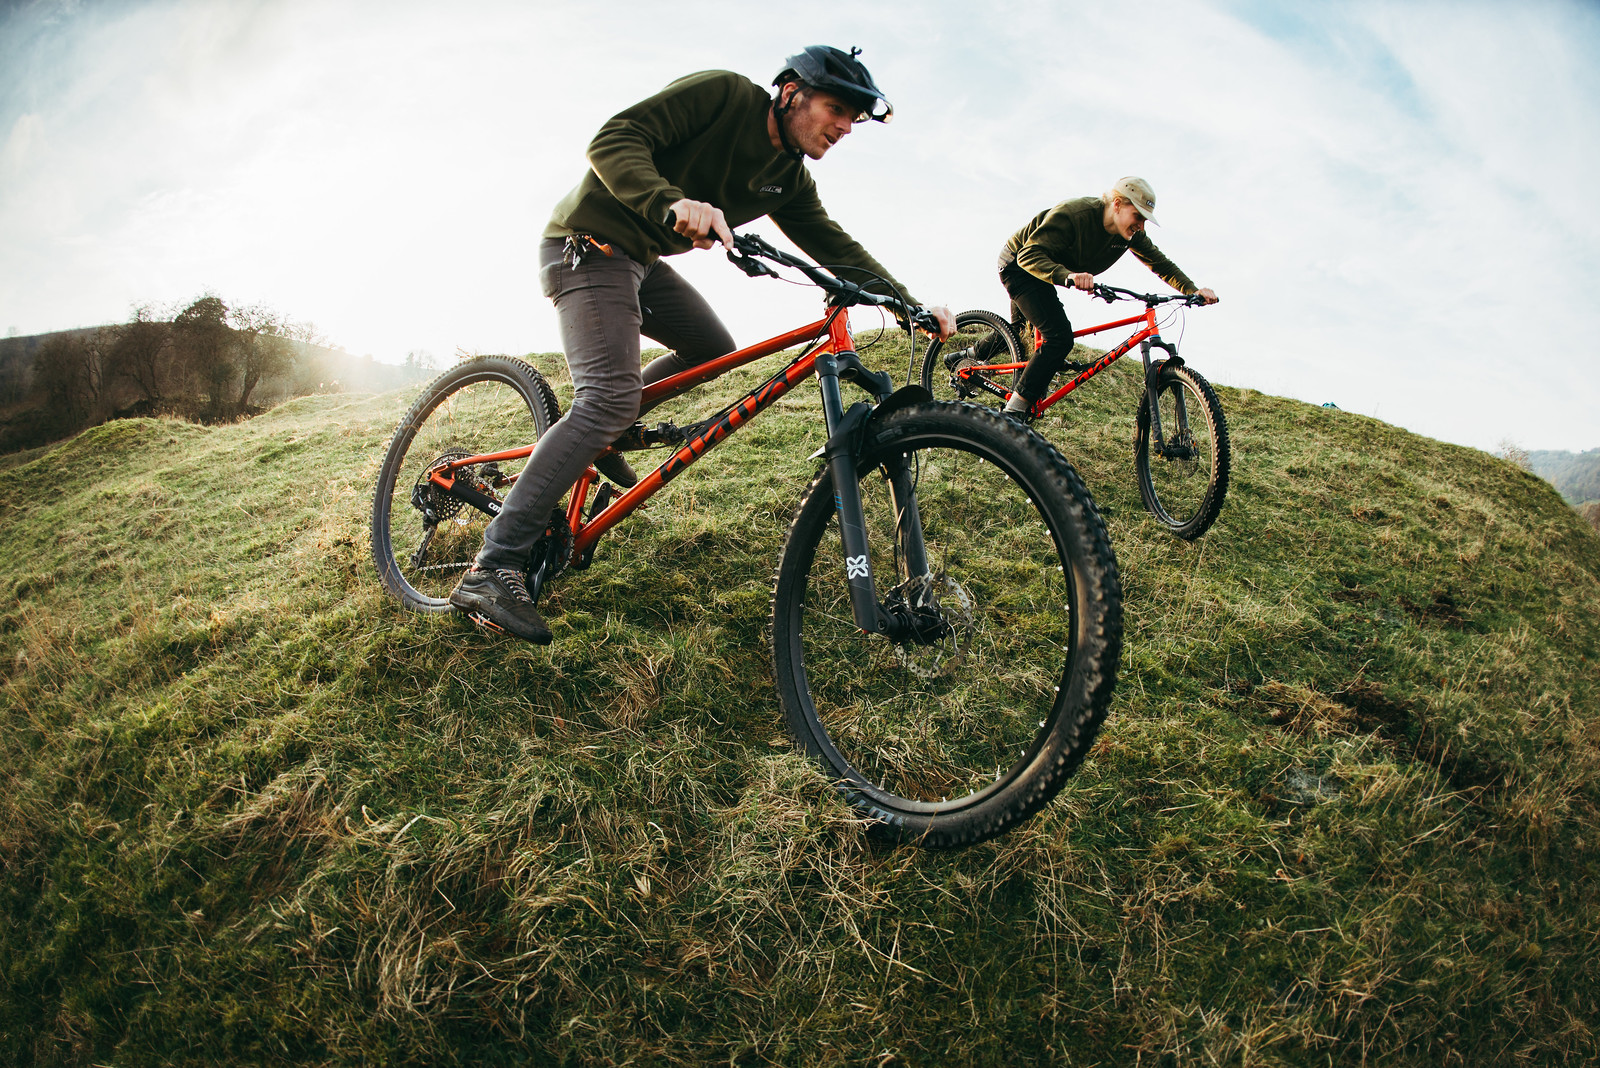 steel city downhill, cotic bikes, sheffield, steel full suspension, mountain biking, reynolds 853, steel is real, steel hardtail, trail hardtail, cotic cc